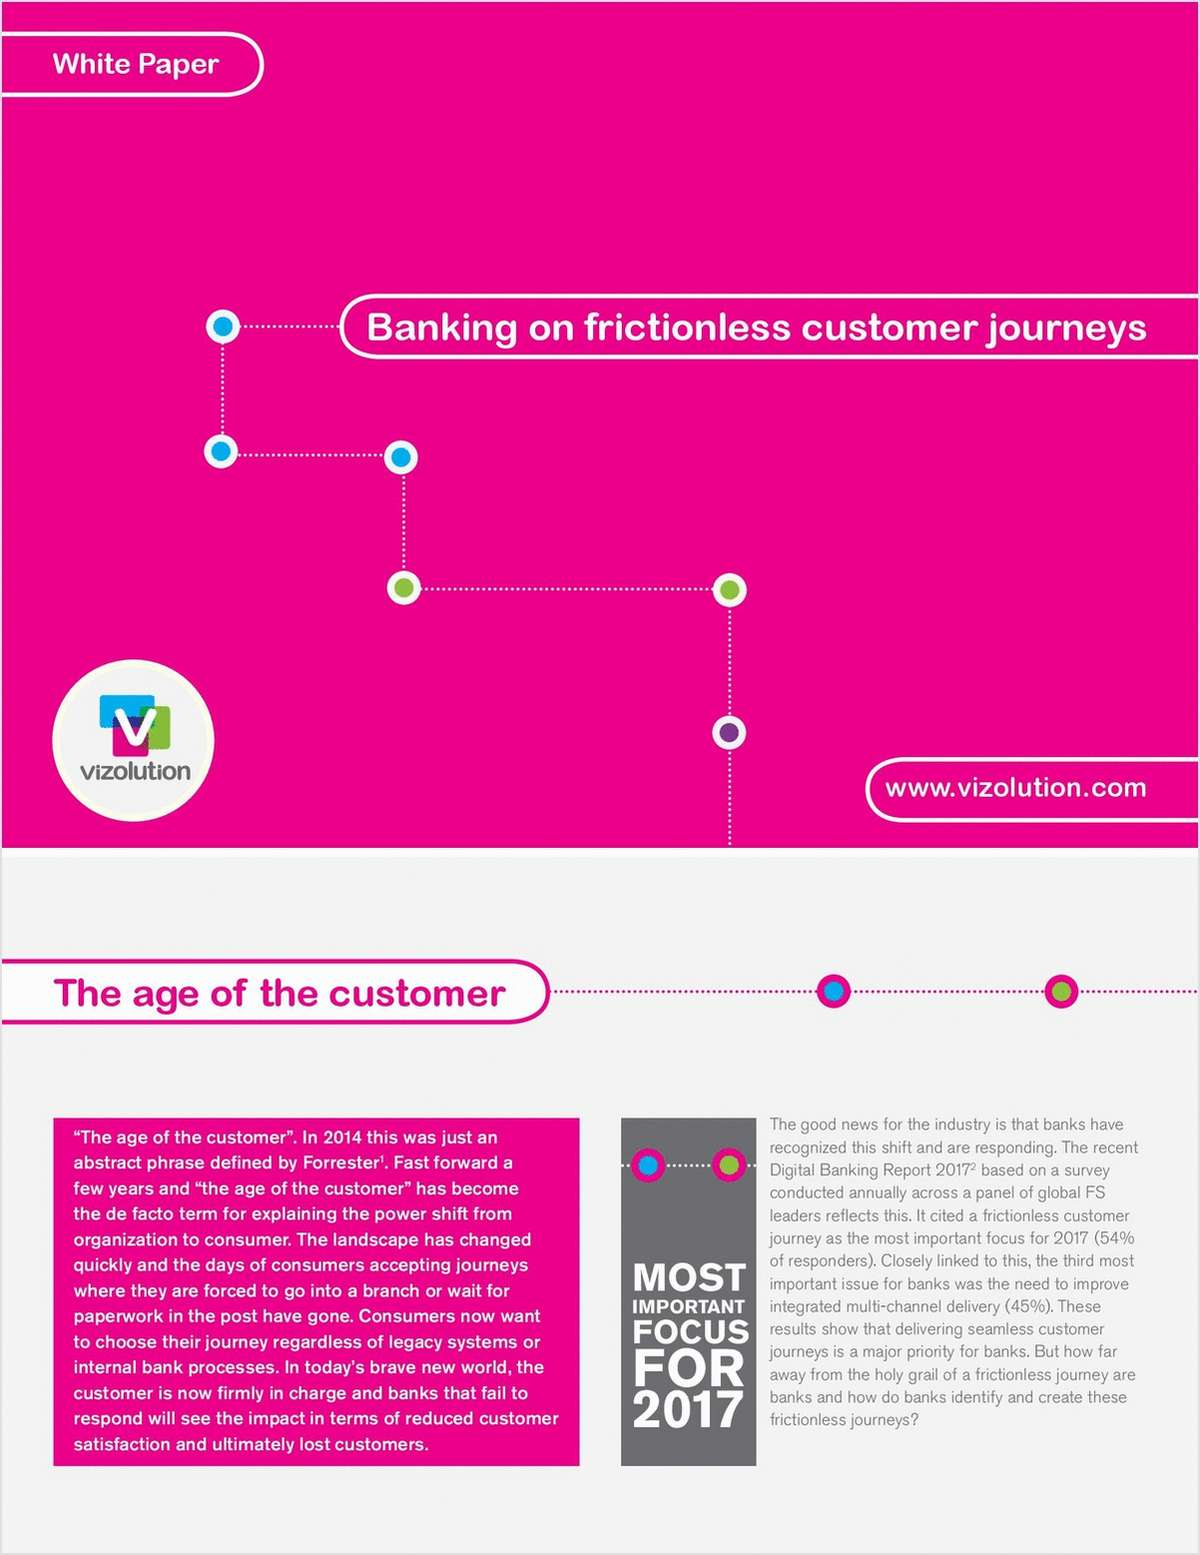 Banking on Frictionless Customer Journeys - US